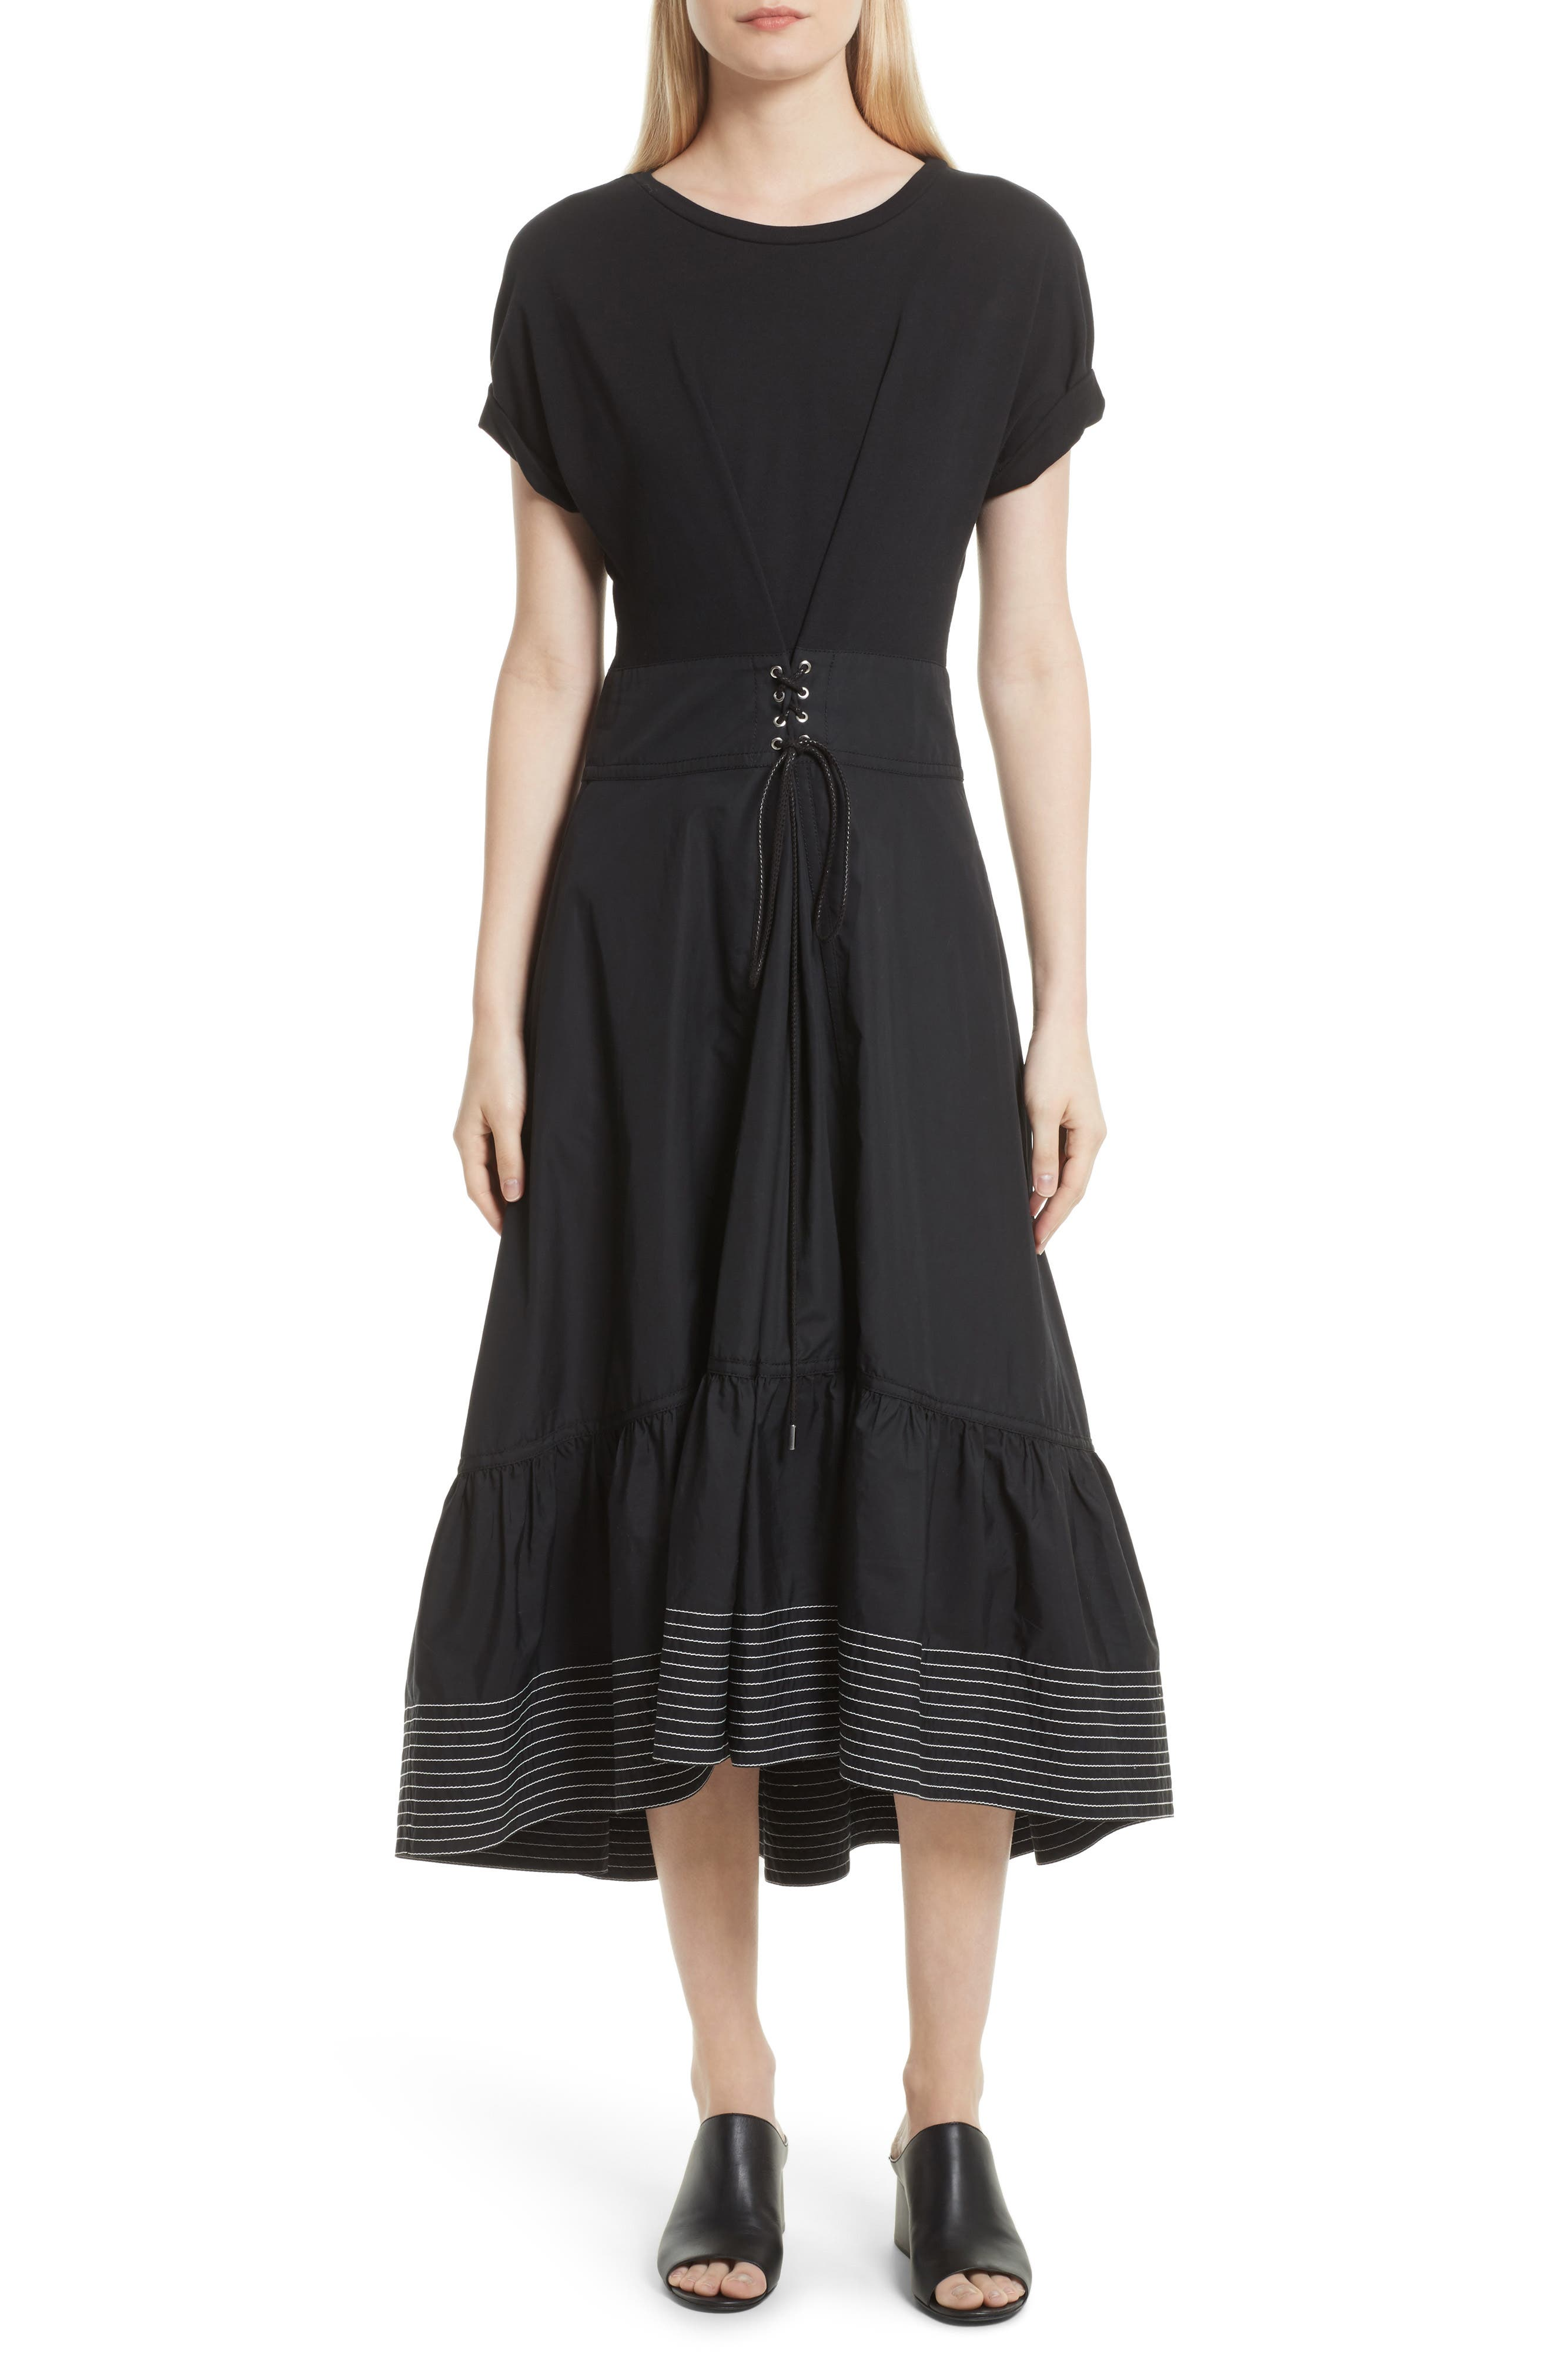 Main Image - 3.1 Phillip Lim Corset Waist Dress